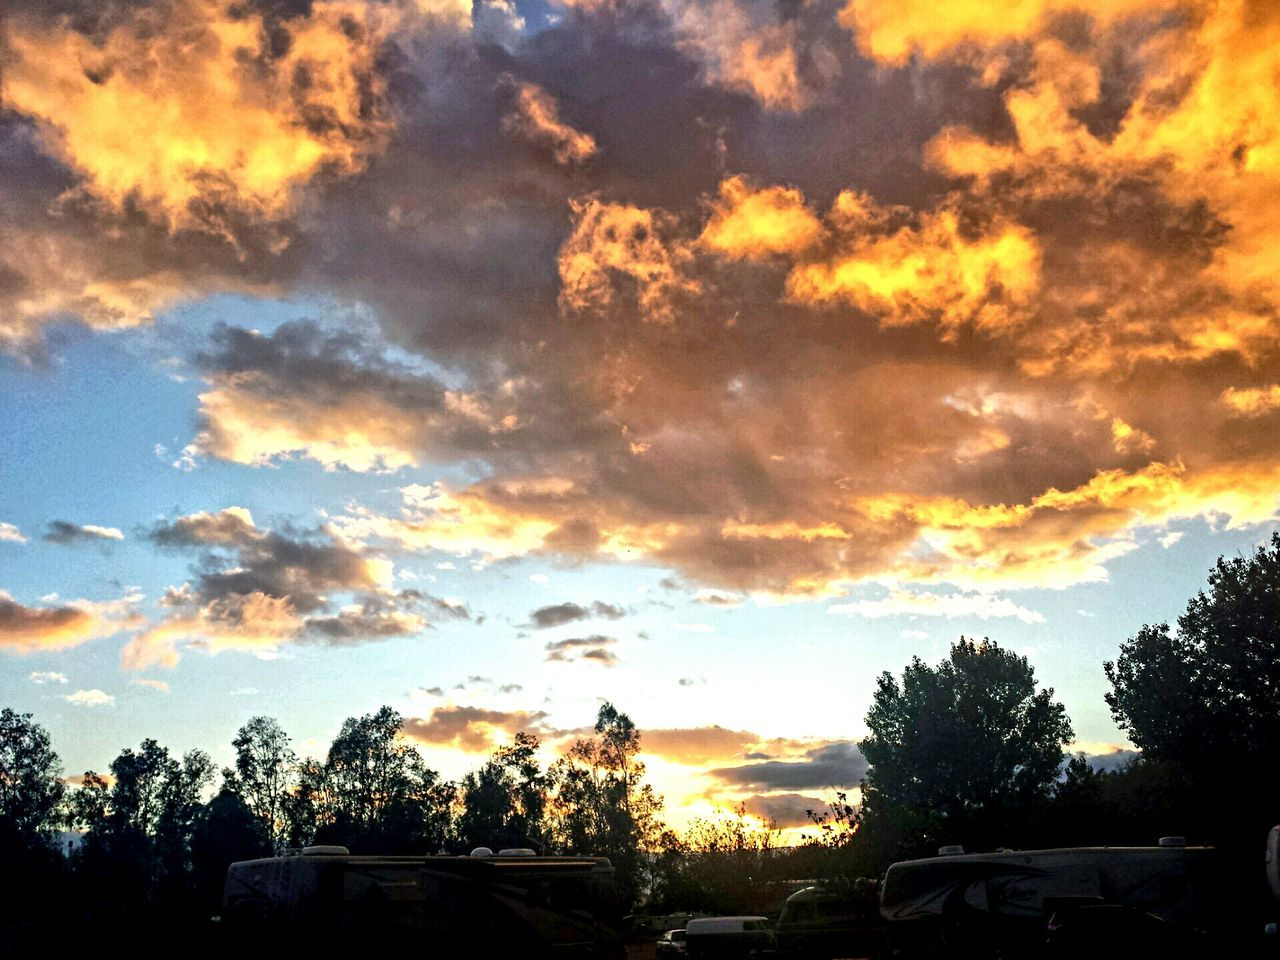 cloud - sky, sunset, sky, tree, car, silhouette, dramatic sky, nature, sun, no people, beauty in nature, land vehicle, outdoors, growth, scenics, day